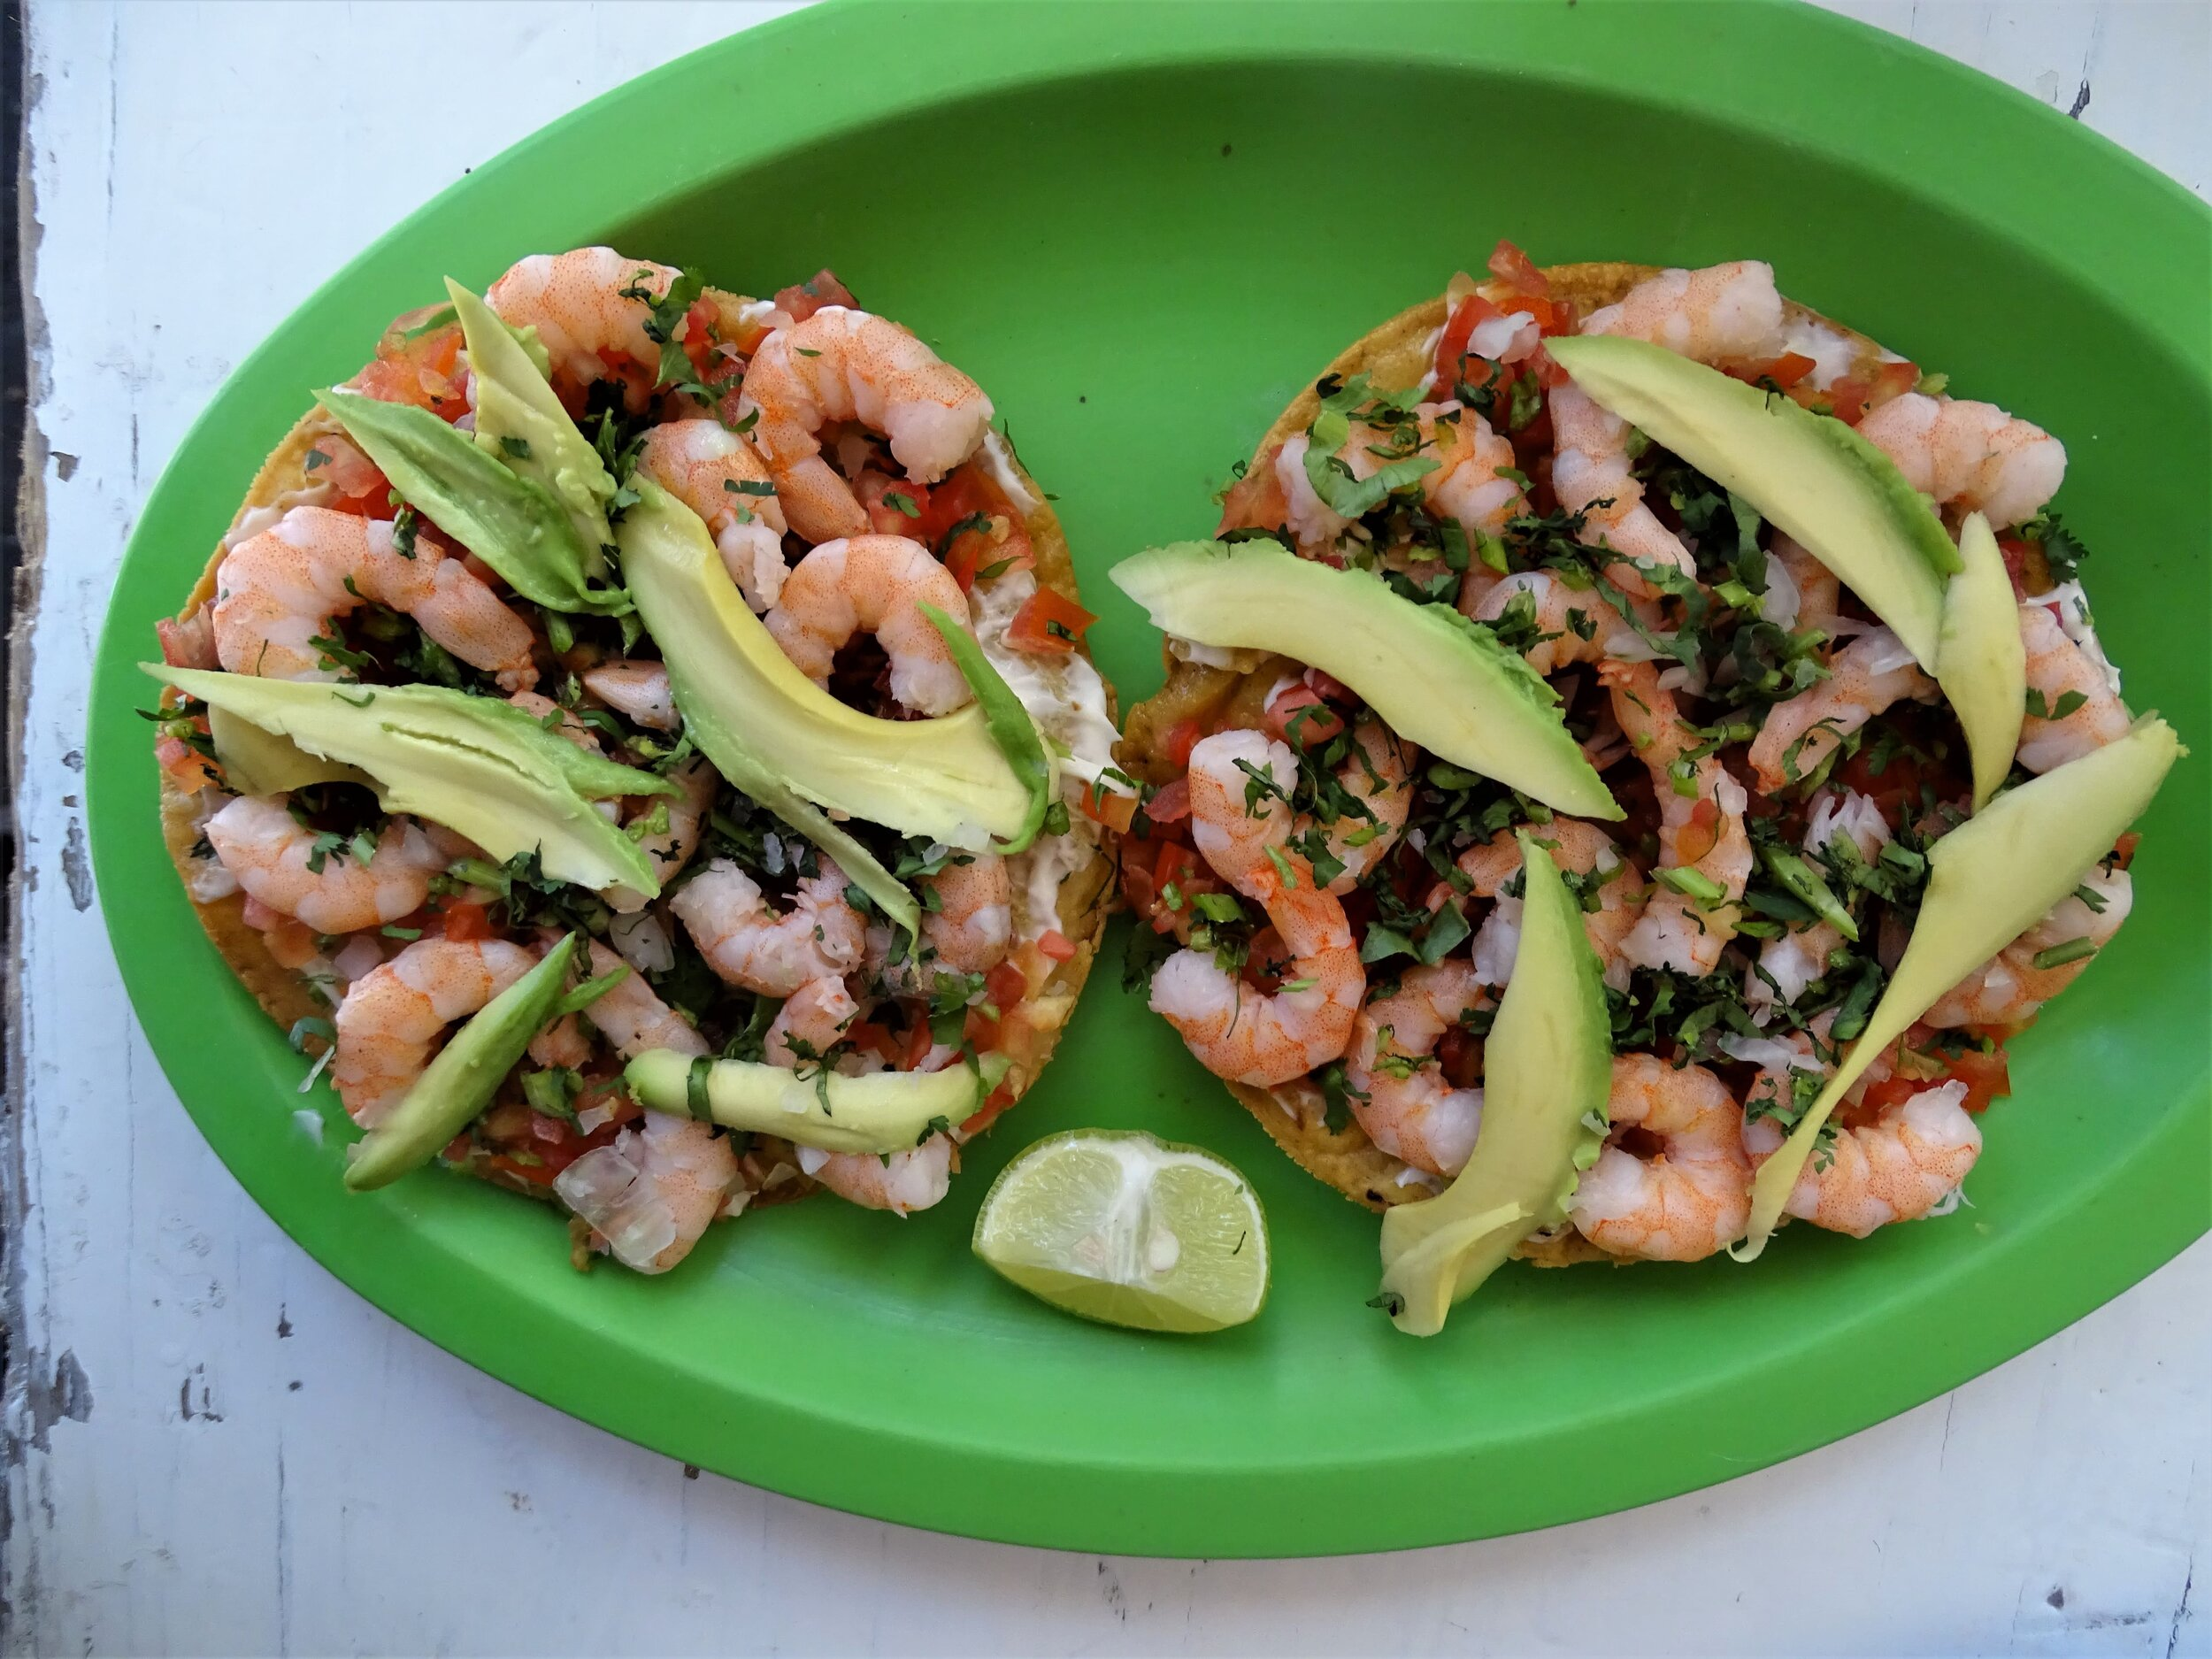 Tostadas are one of the most popular foods in Mexico.